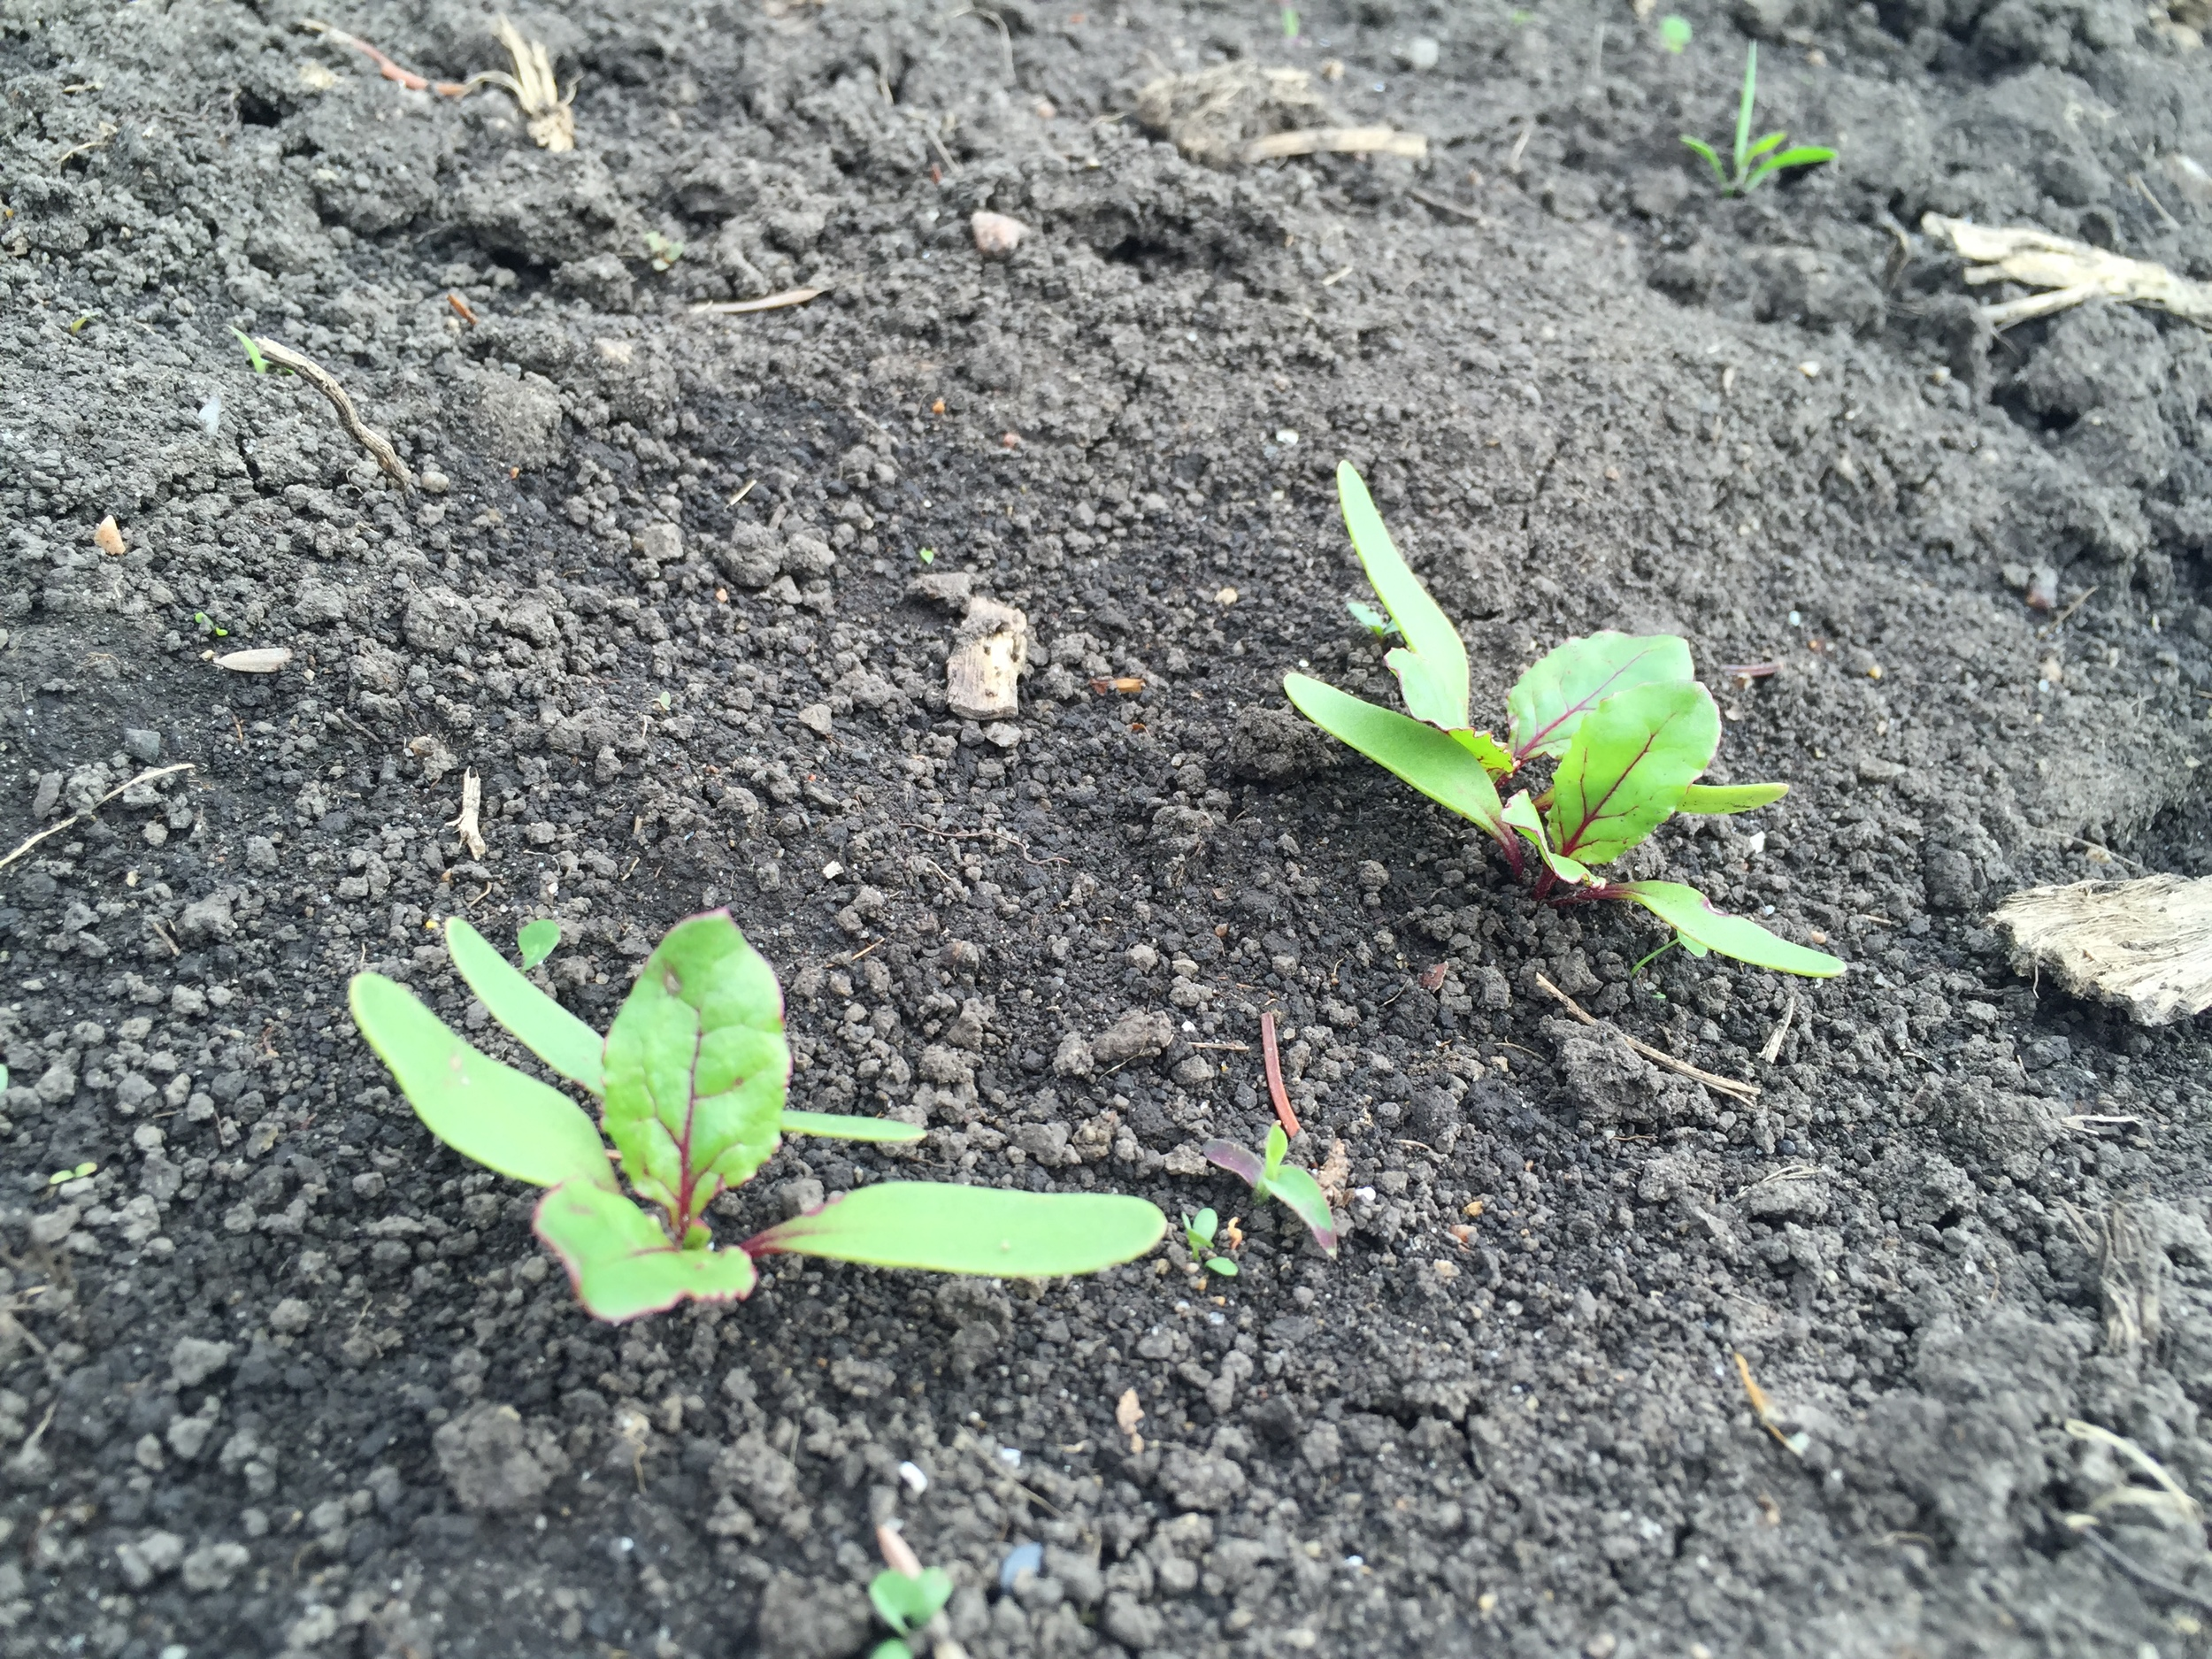 Beets are coming in nicely.